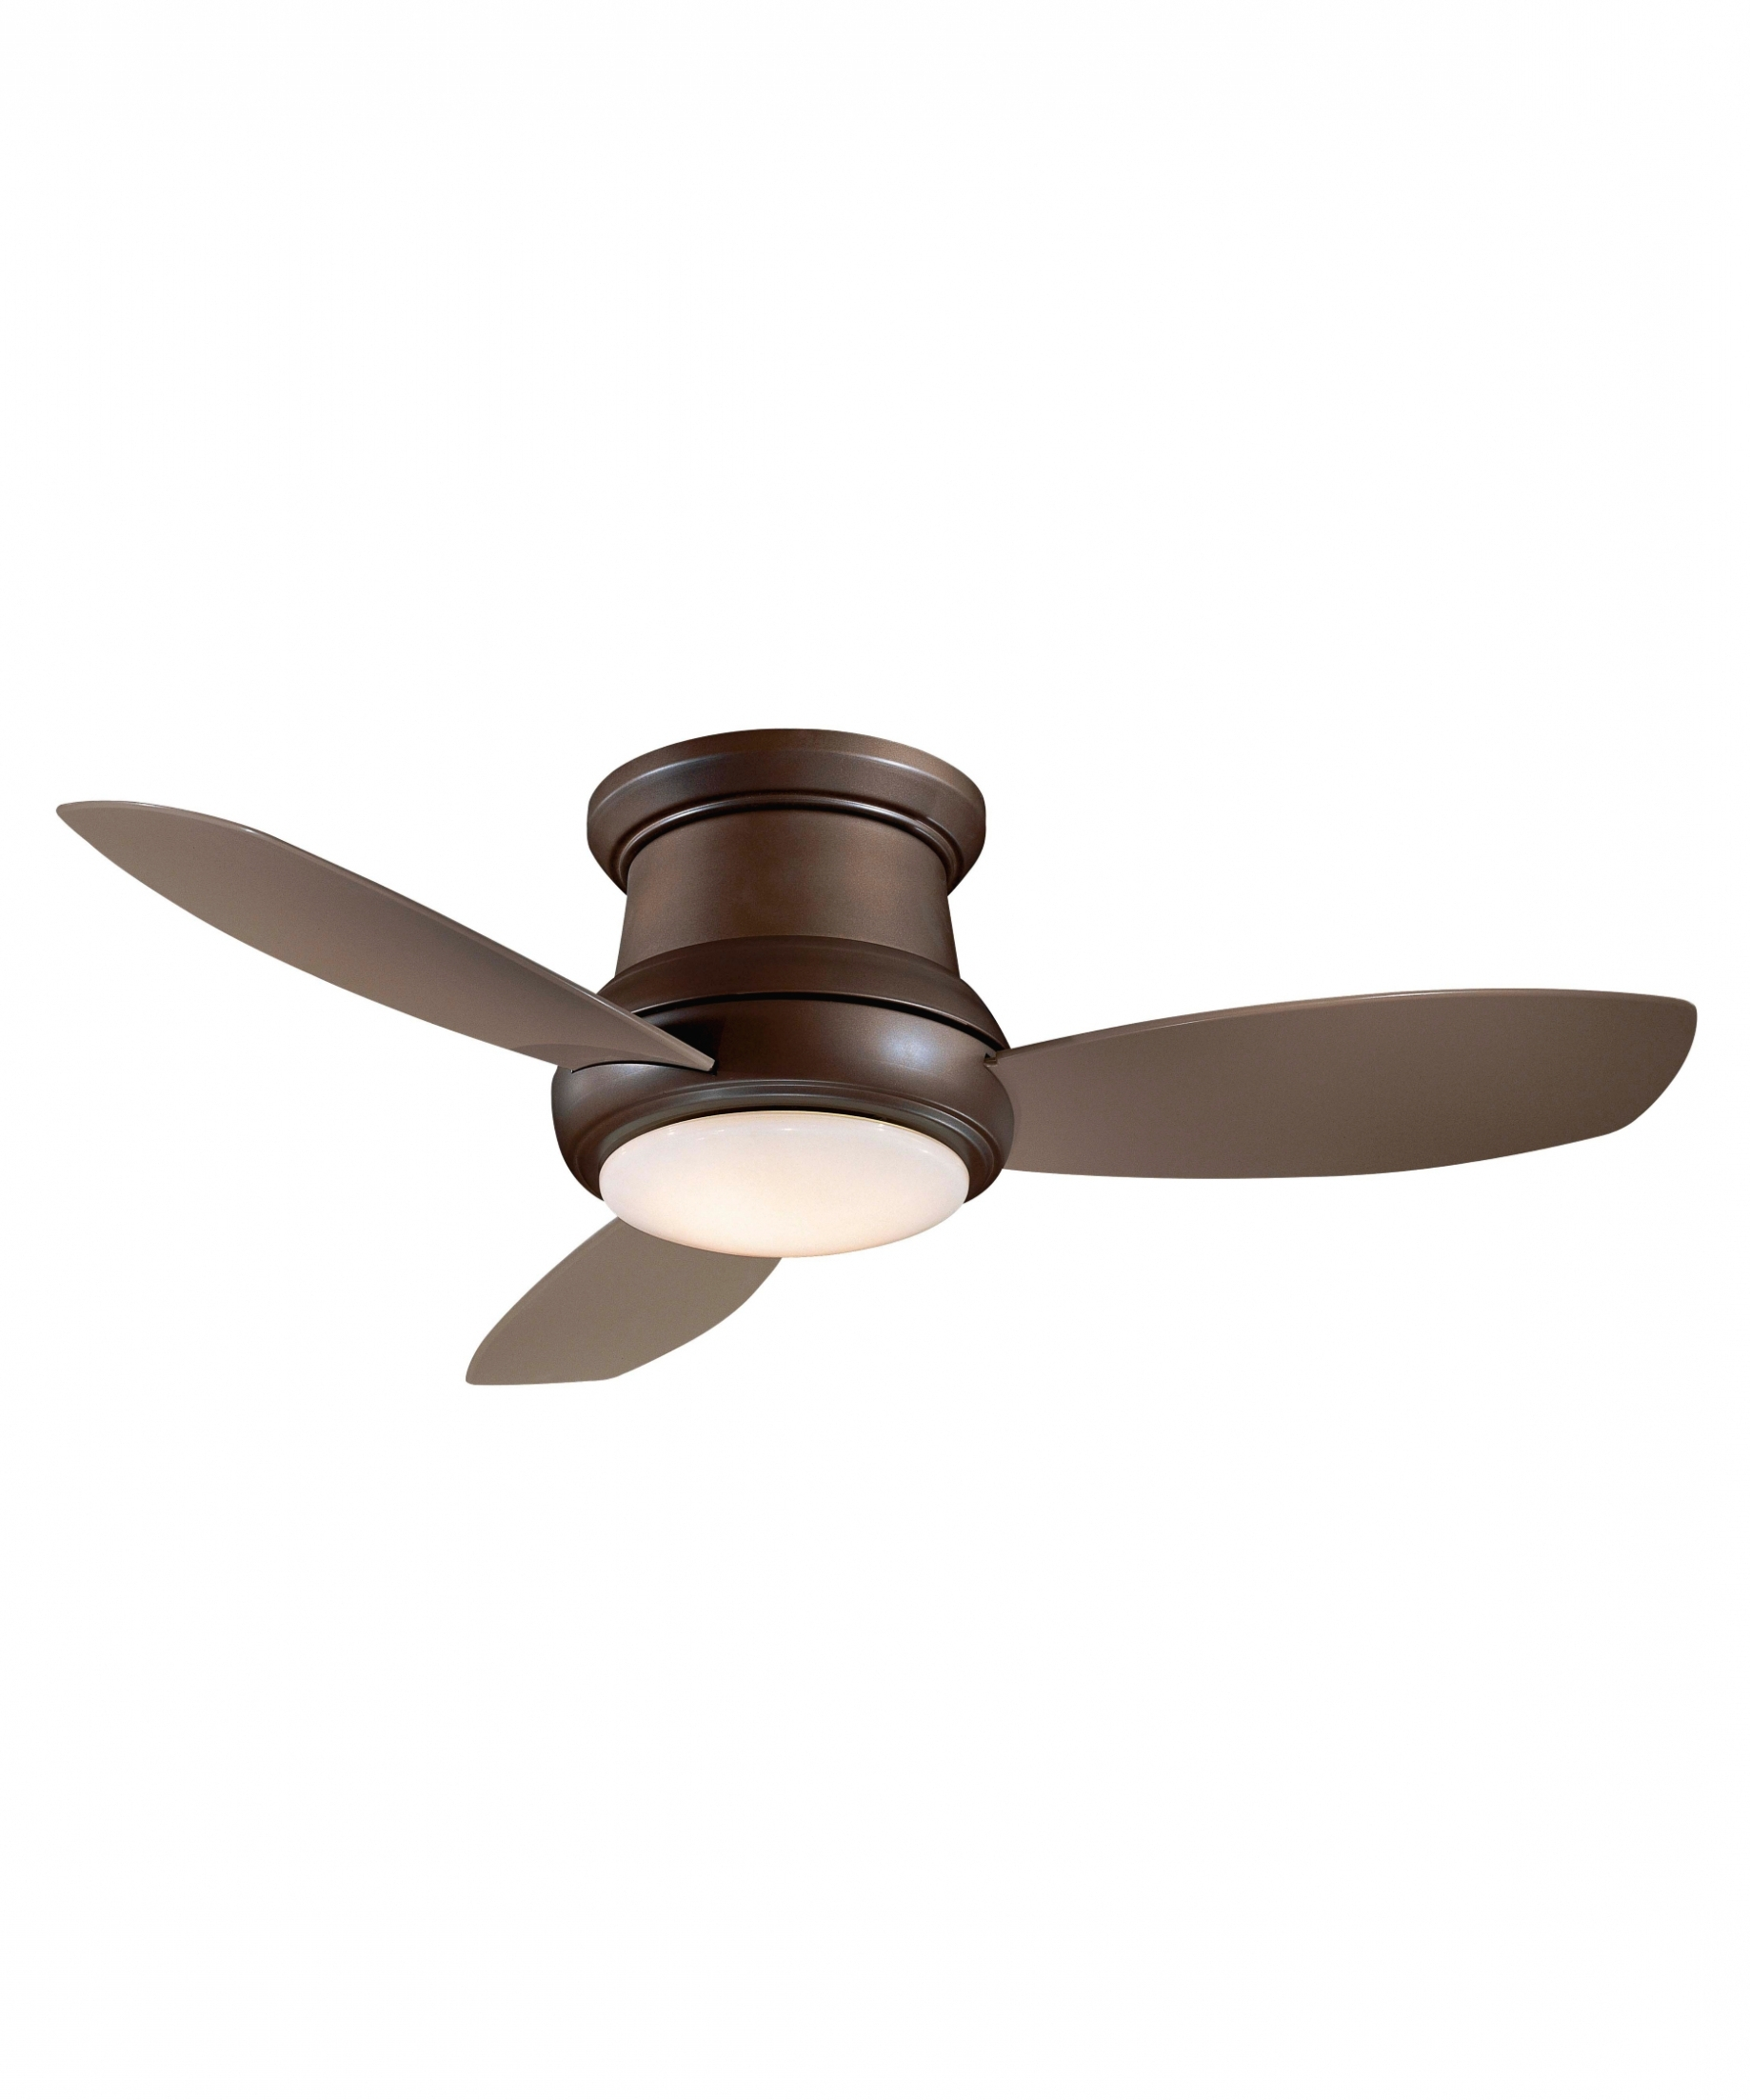 Preferred Home Decor: Growth Flush Mount Outdoor Ceiling Fan With Light Fans Within Flush Mount Outdoor Ceiling Fans (View 15 of 20)